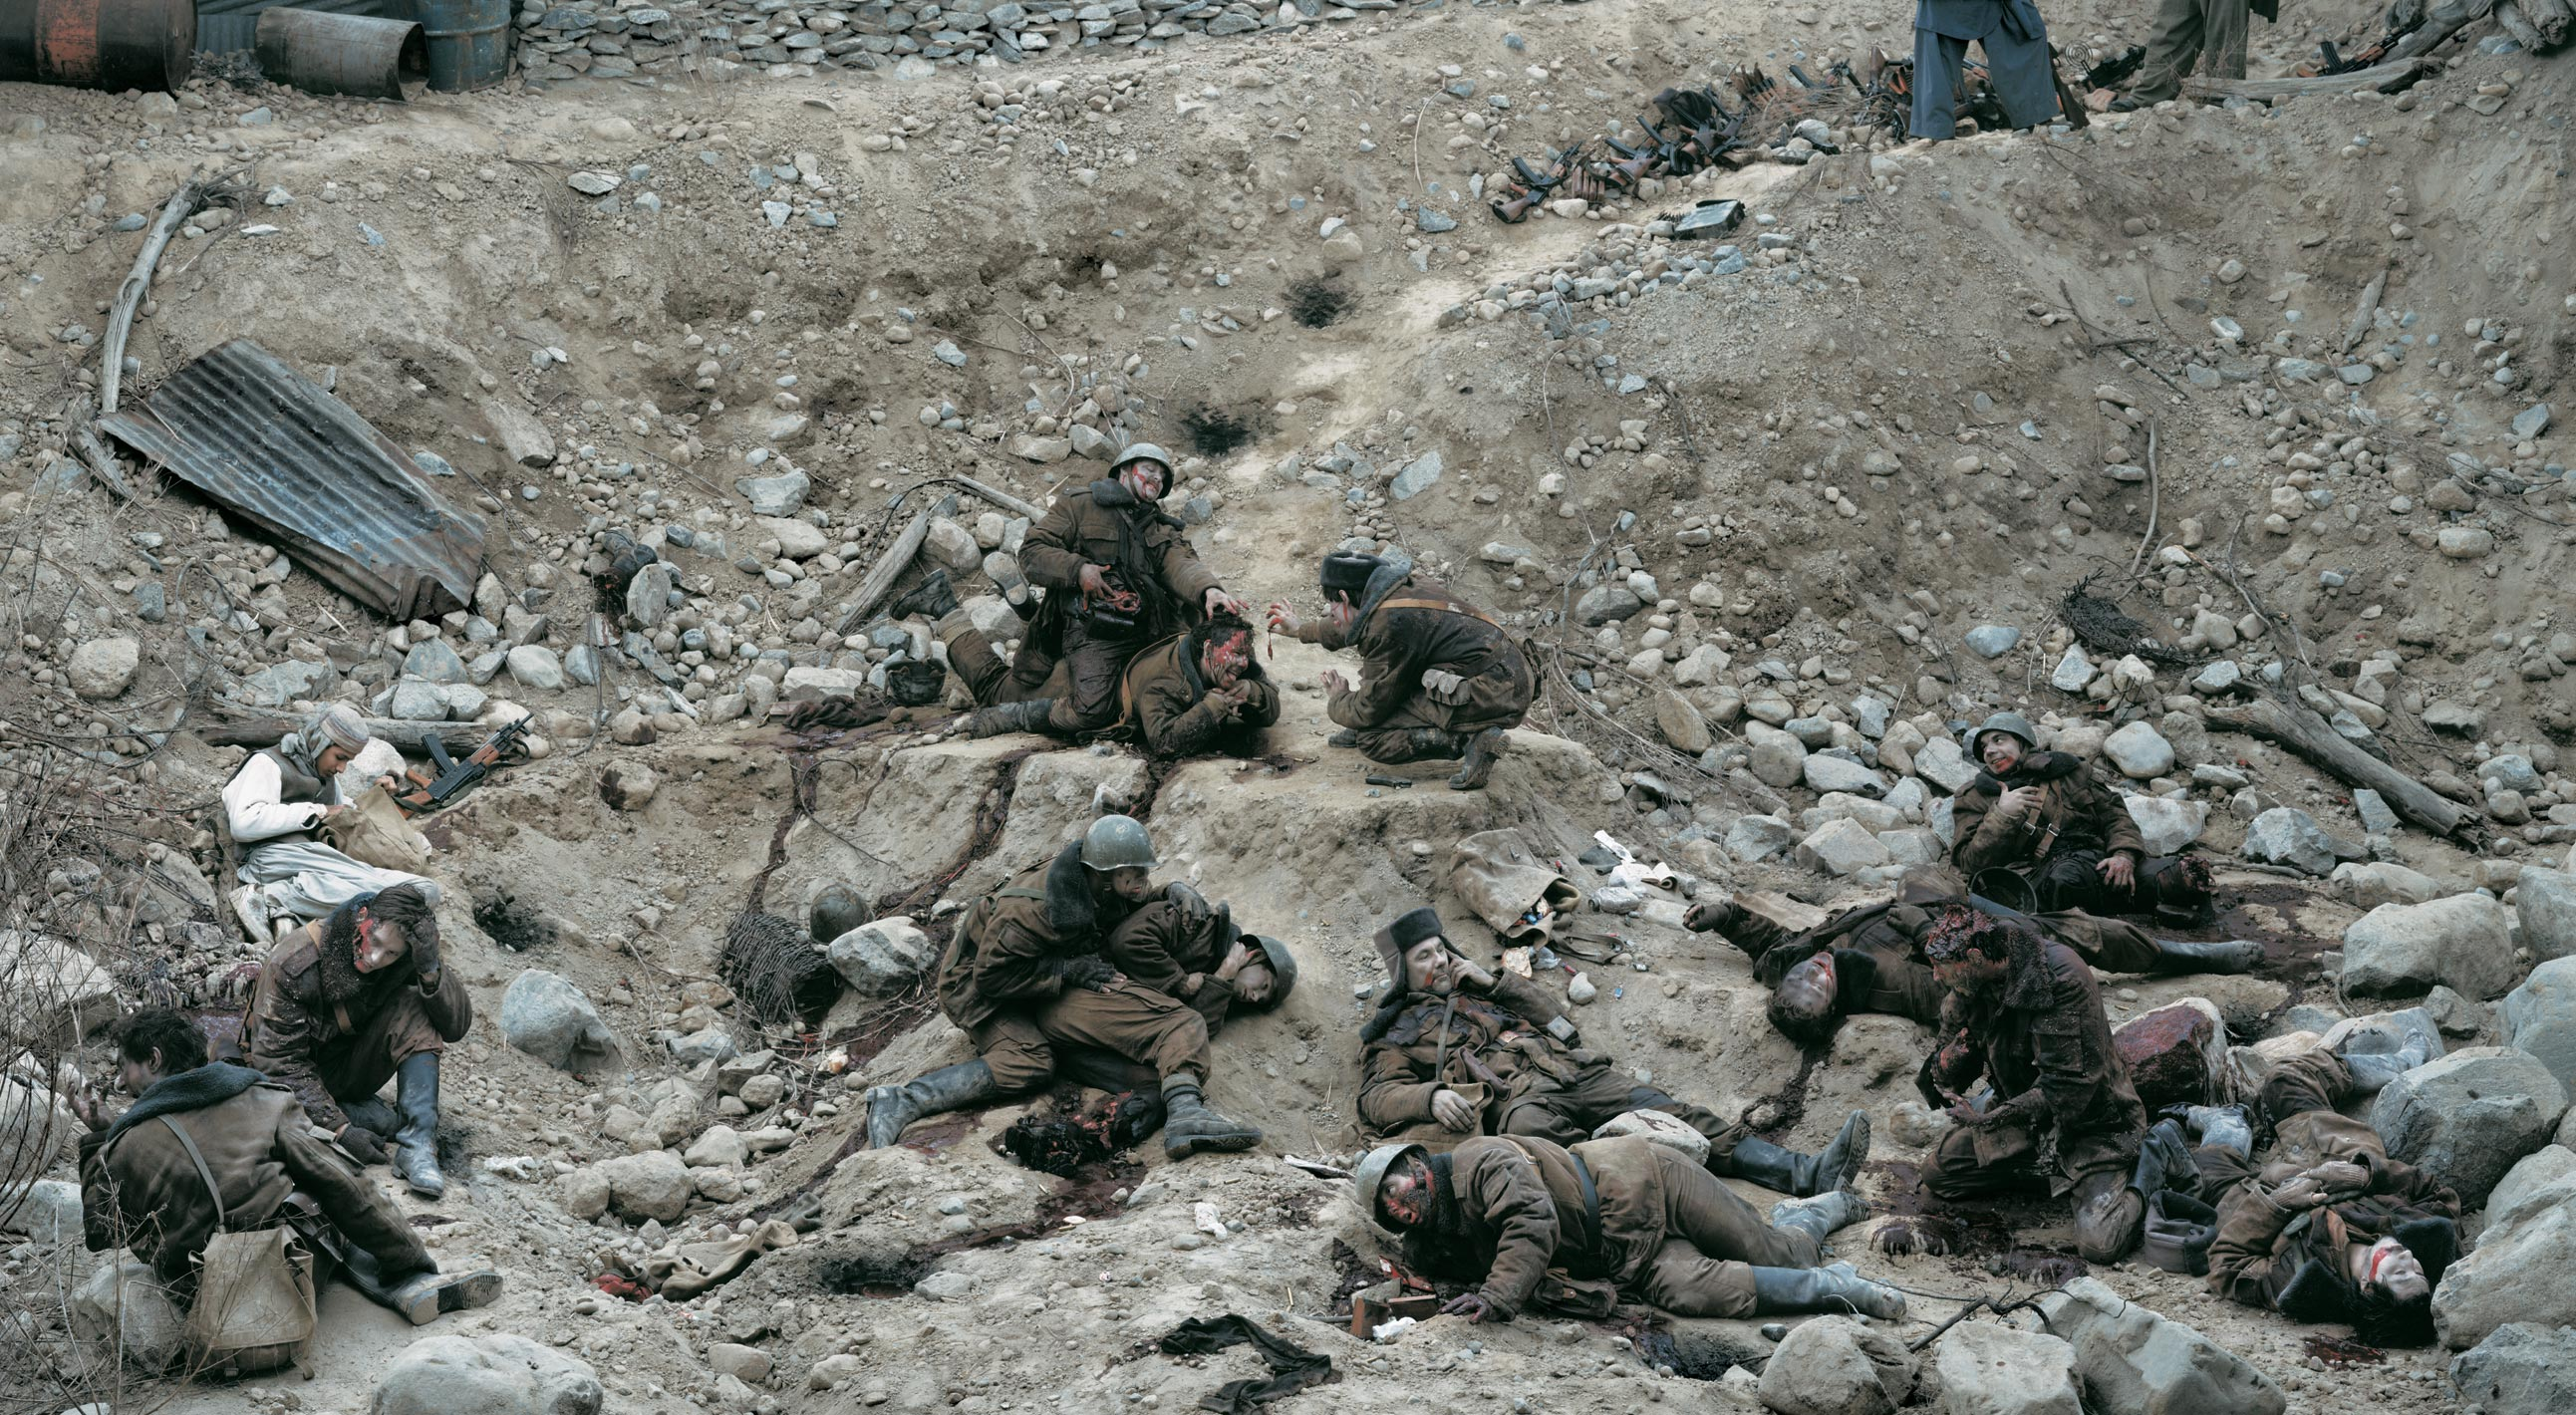 4.<br />Fotó: Jeff Wall: Dead Troops Talk (A vision after an ambush of a Red Army patrol, near Moqor, Afghanistan, winter 1986) (1992)<br />$3,666,500<br />May 8, 2012<br />Christie's New York